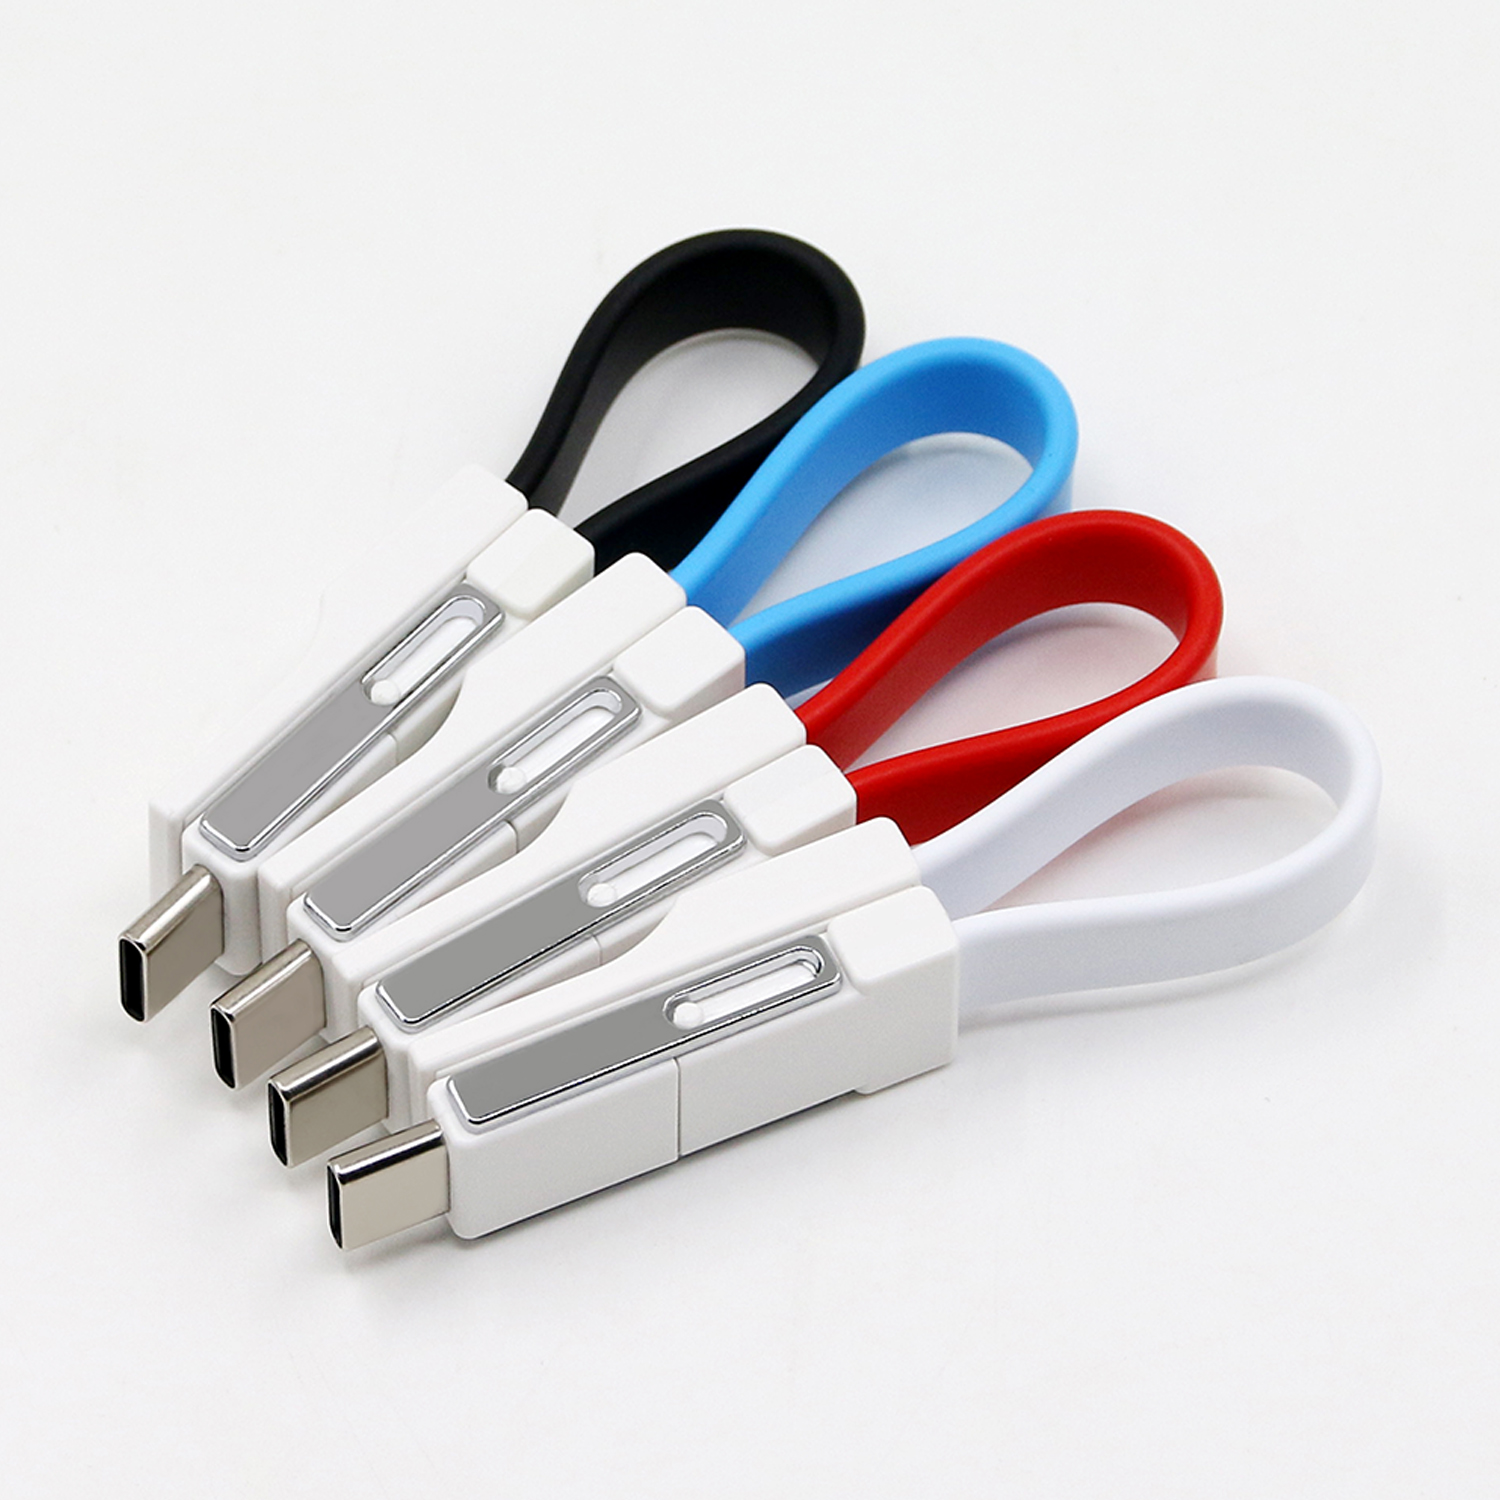 New Promotional Gift 3 In 1 Keyring Usb Cable Charging